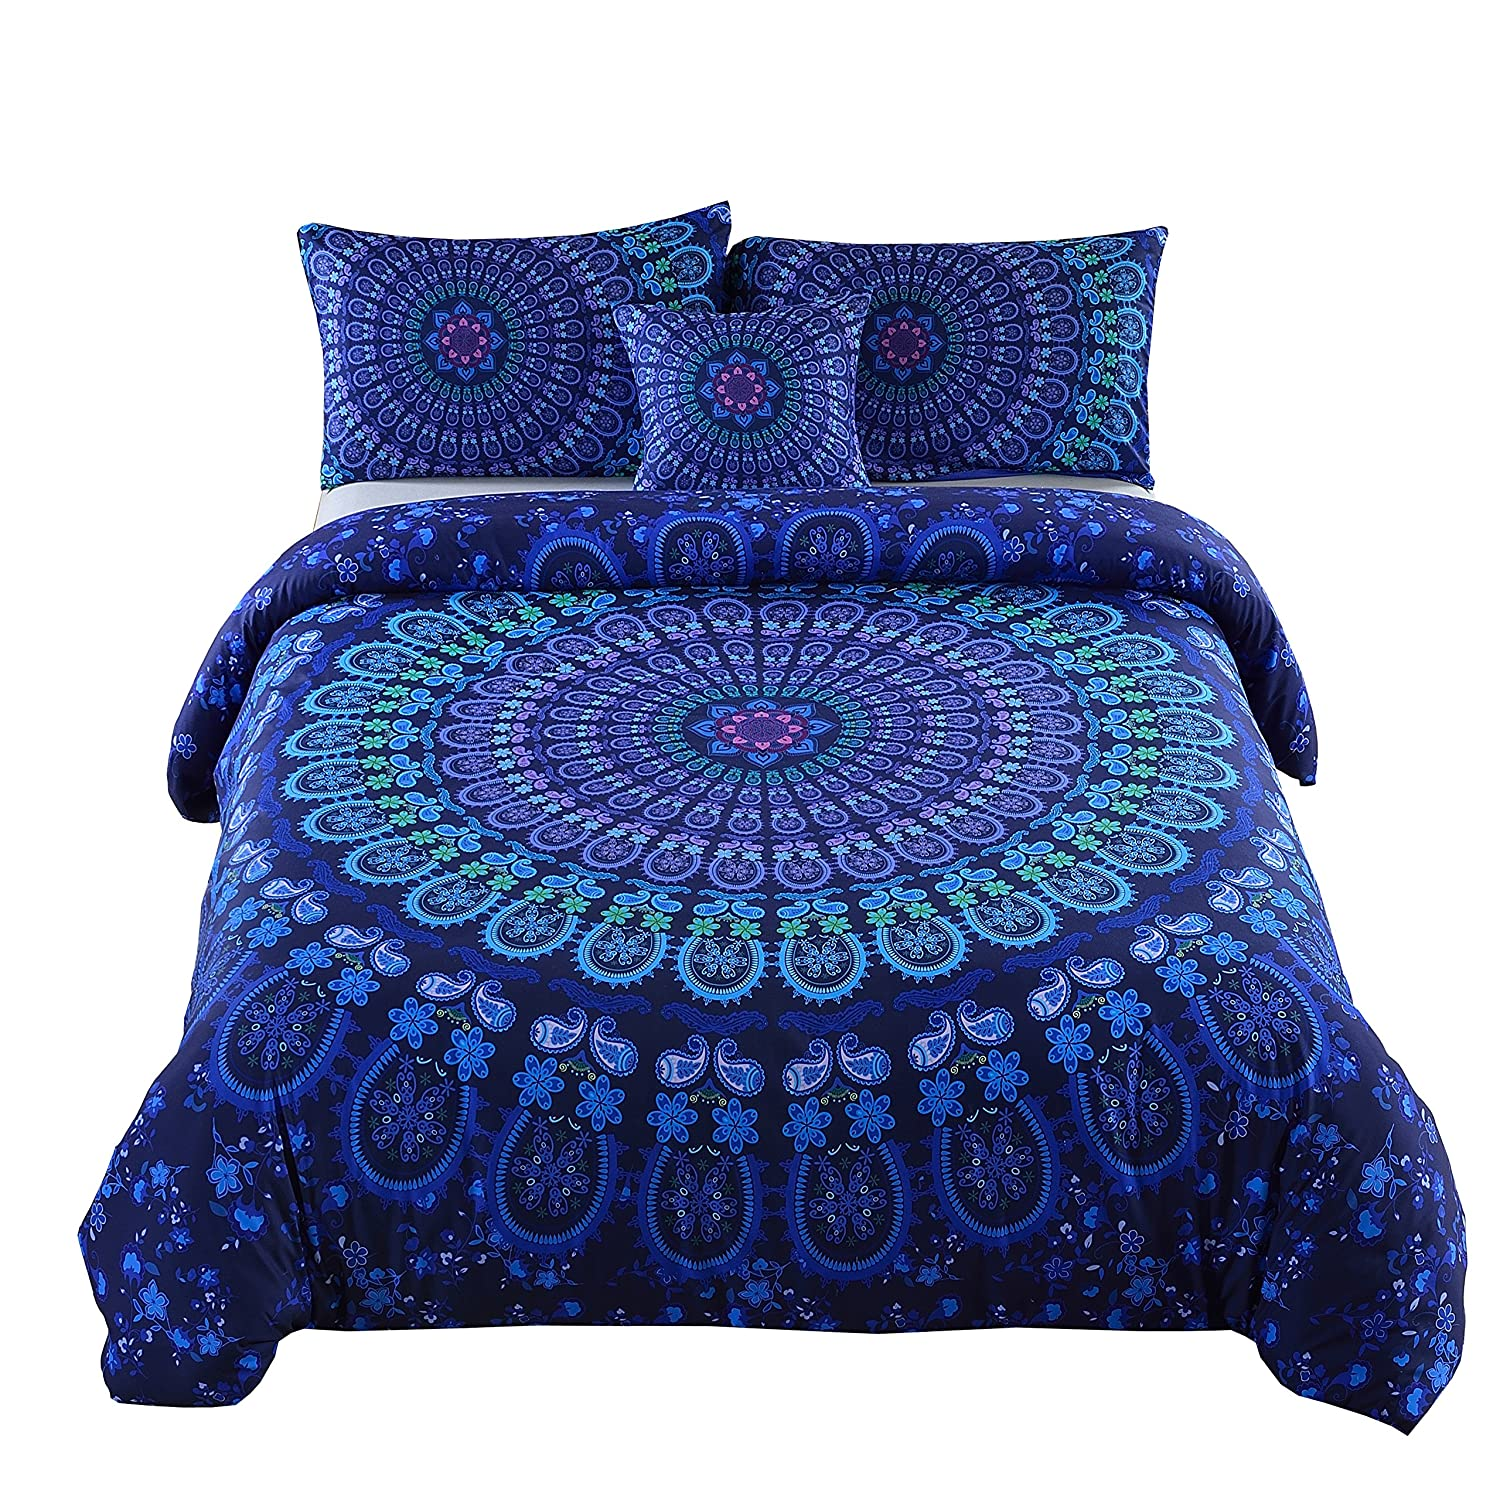 MEILA Duvet Cover Set Luxury Soft Microfiber Bedding Sets Bohemian Mandala Pattern Bedclothes , Queen(90inx 90in), 4 Pieces (1 Duvet Cover+ 2 Pillowcase+ 1 Throw Pillow Case)